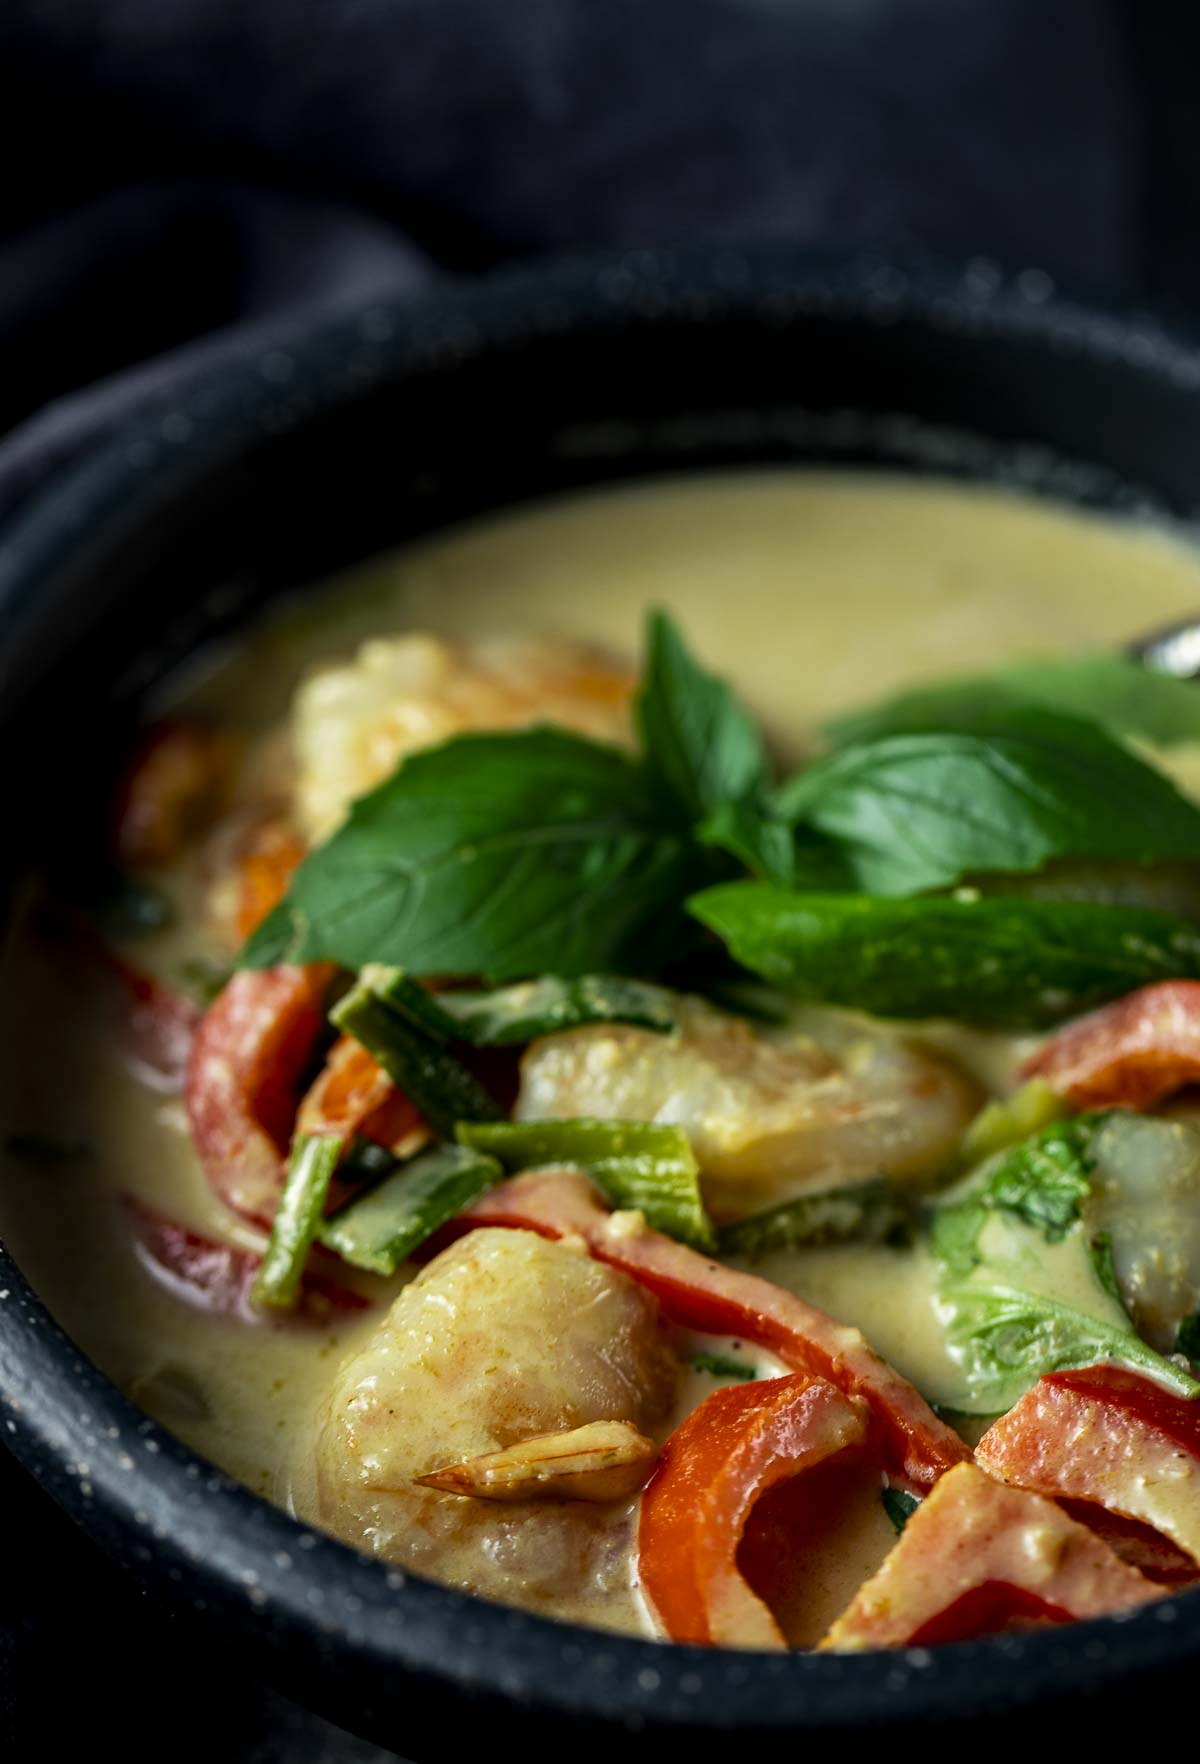 shrimp and red peppers in a bowl with creamy green sauce and fresh basil